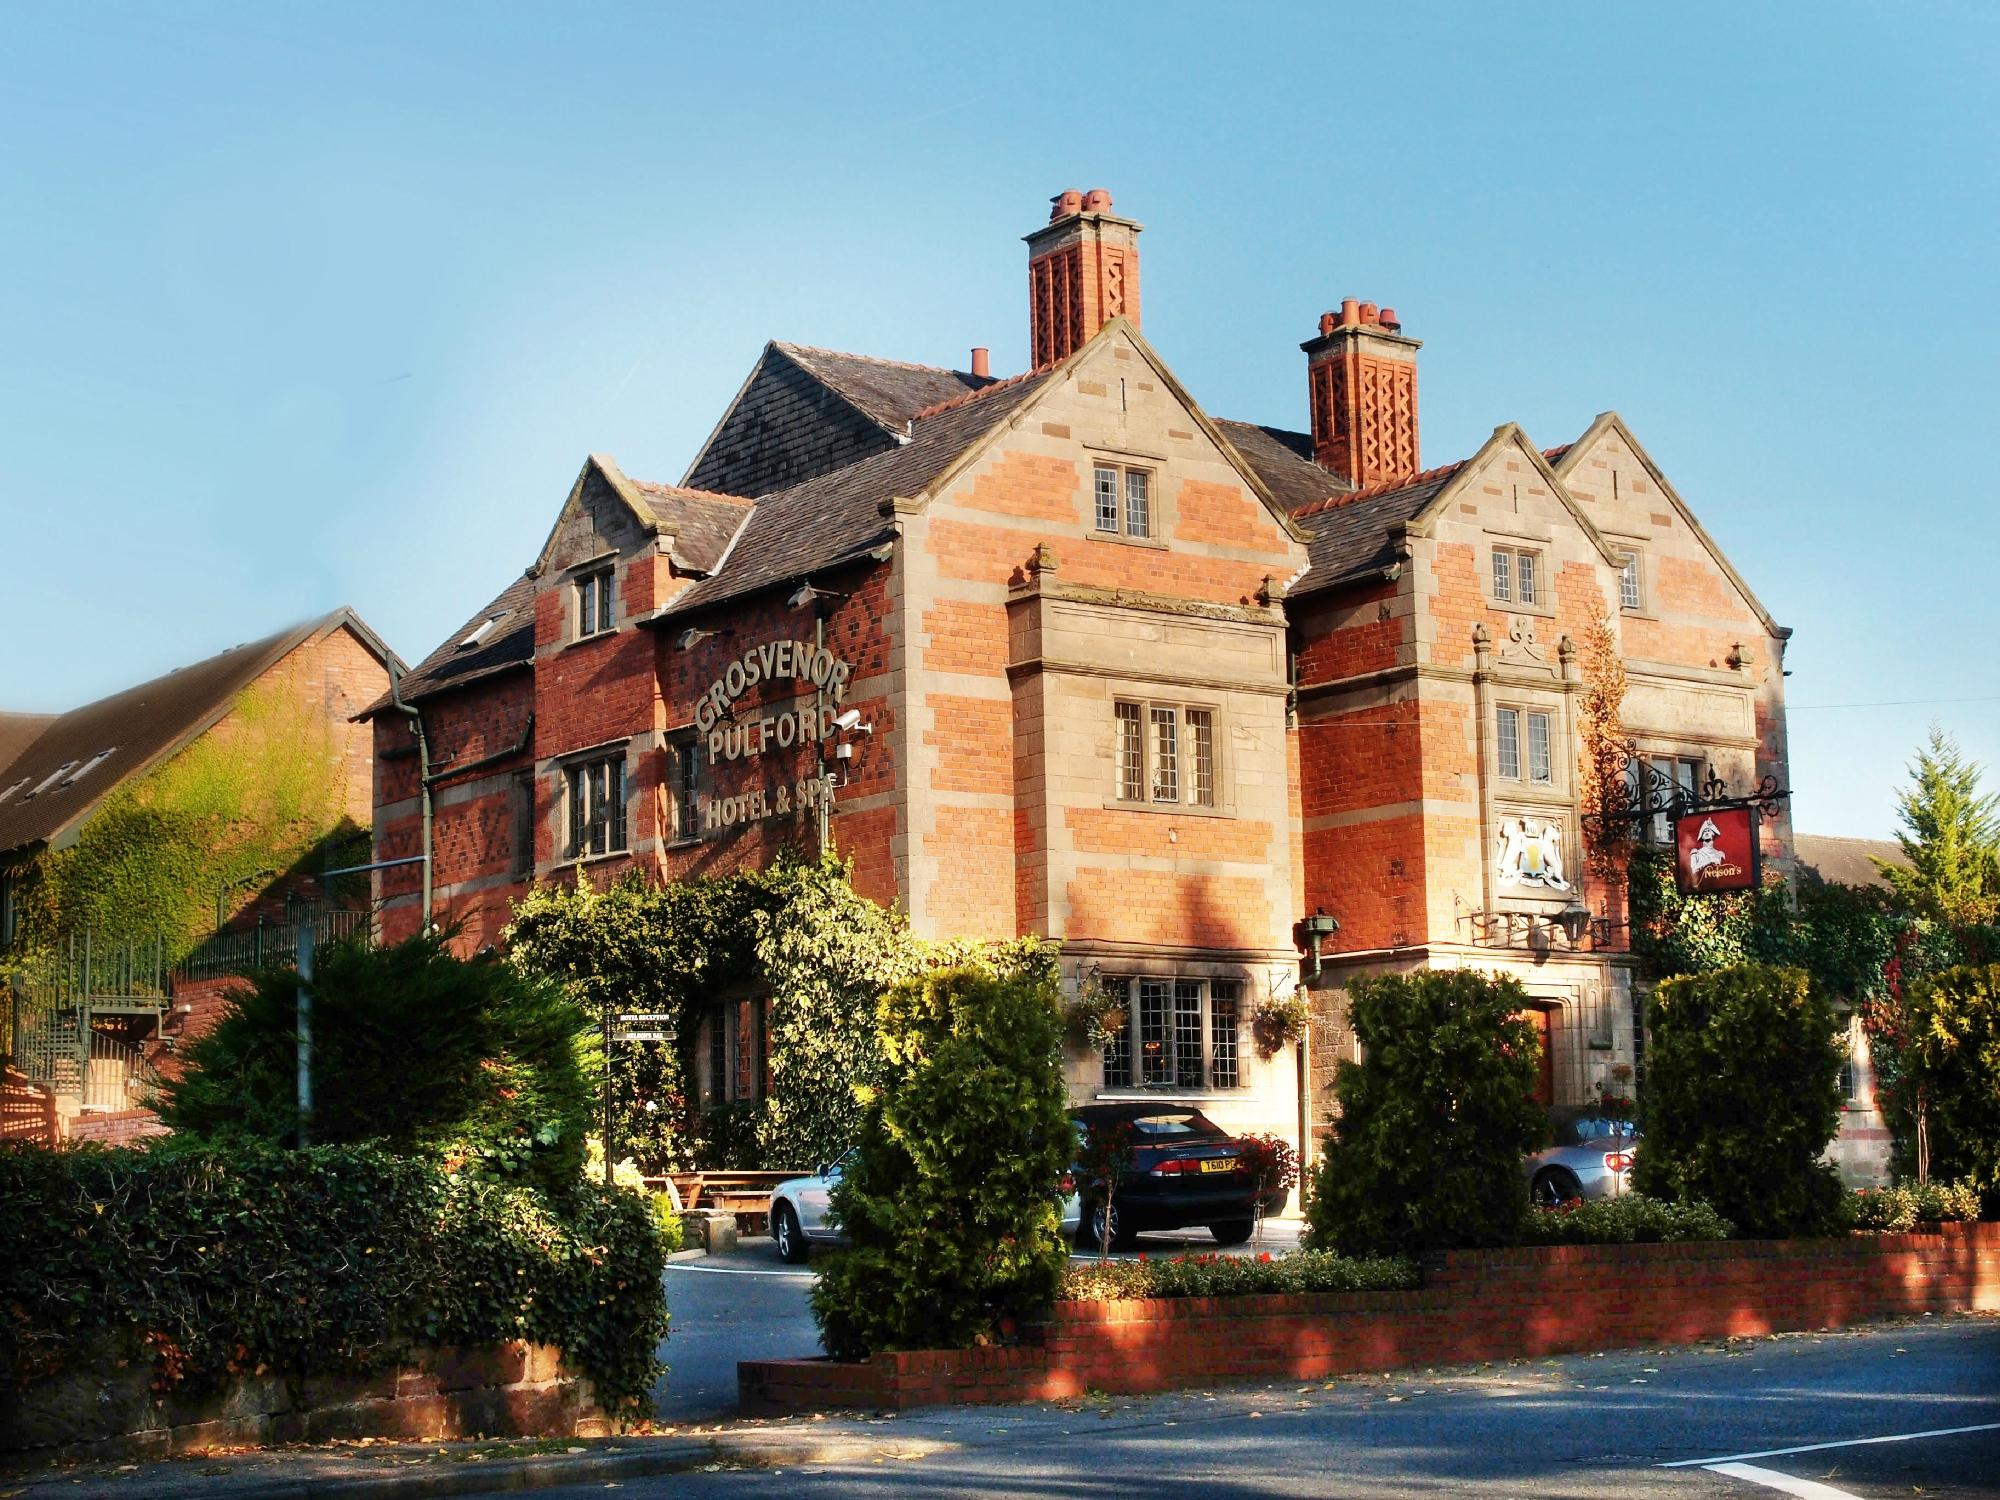 Grosvenor Pulford Hotel & Spa